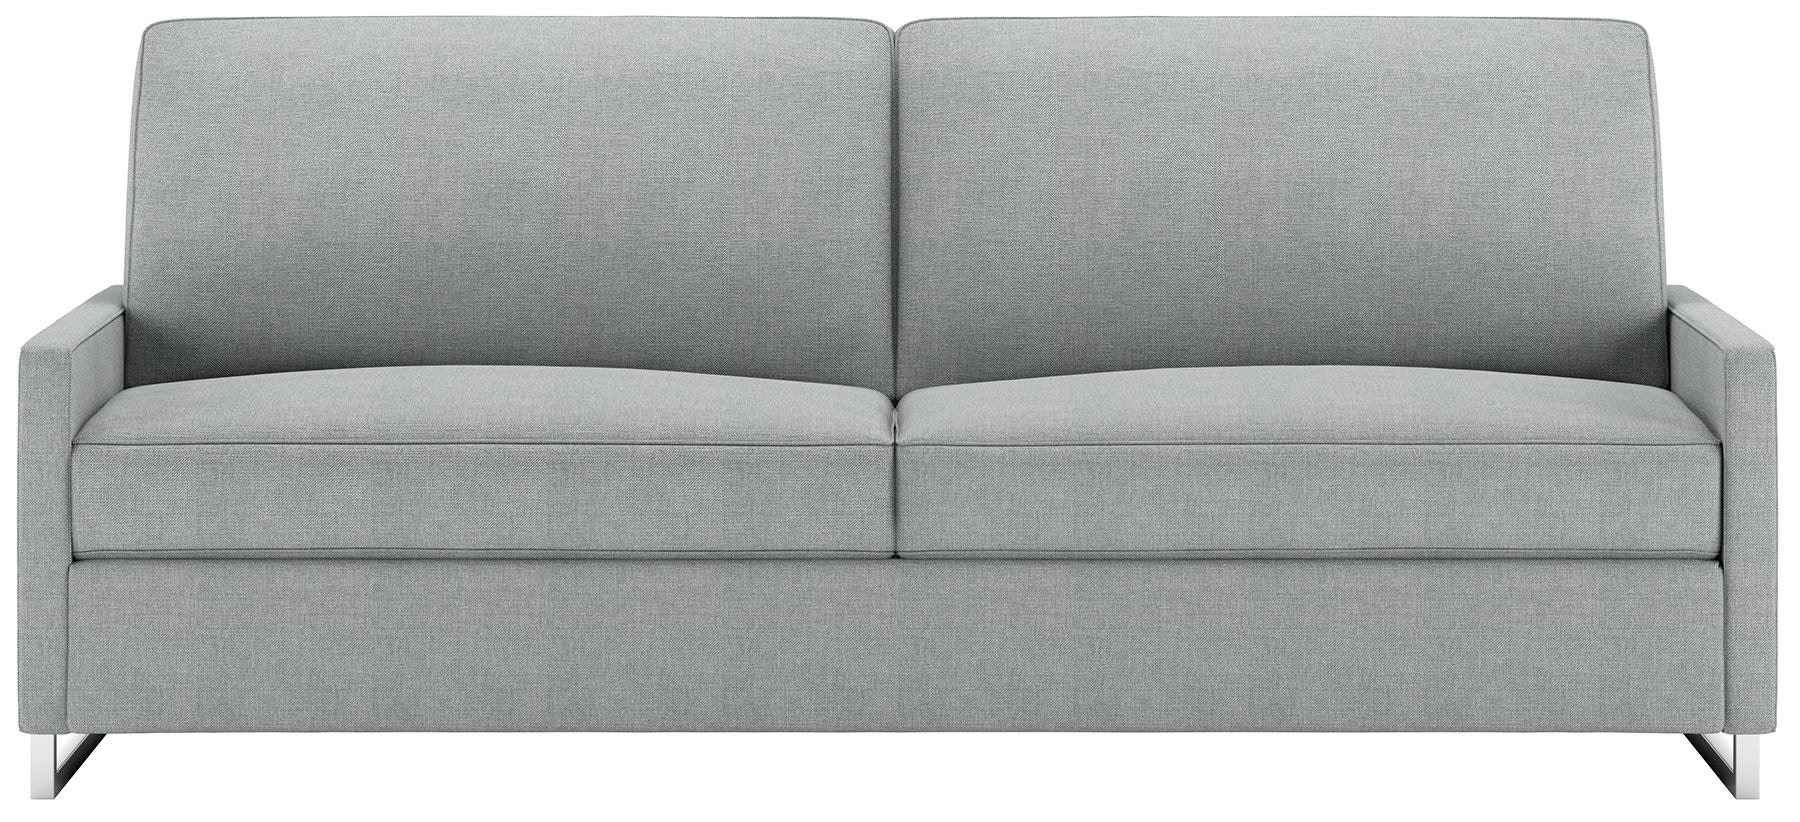 American Leather Living Room Sofa Sleeper Queen Size Bdt So2 Qs